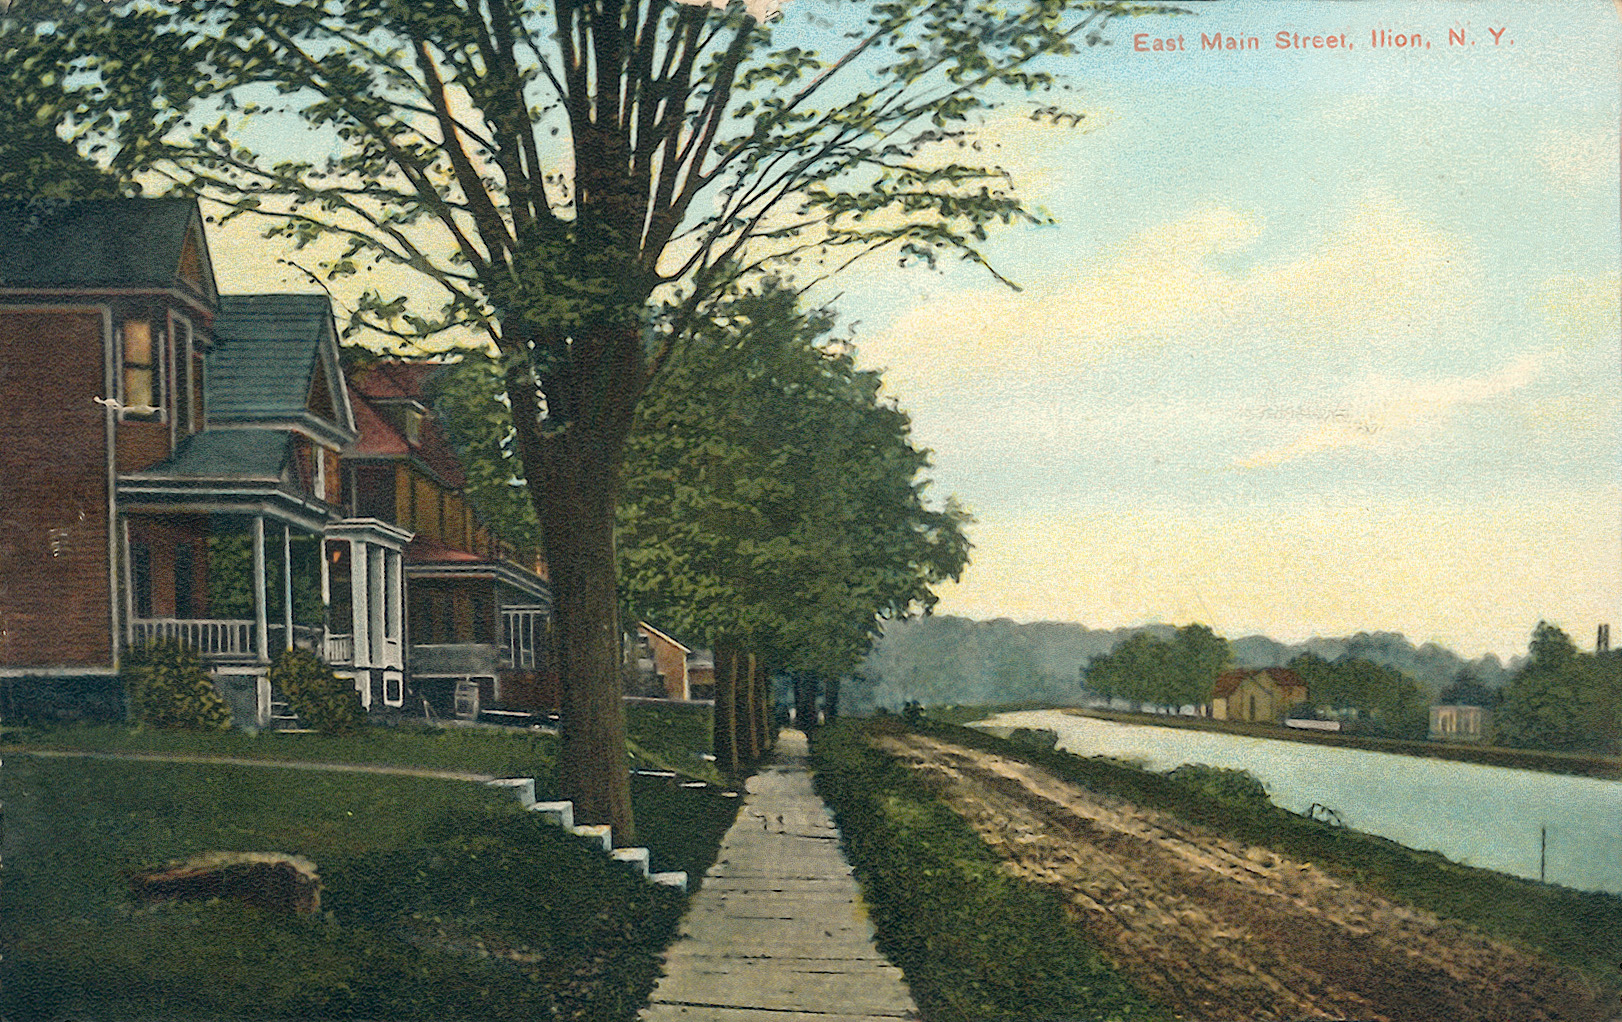 Erie Canal Images - East Central Section